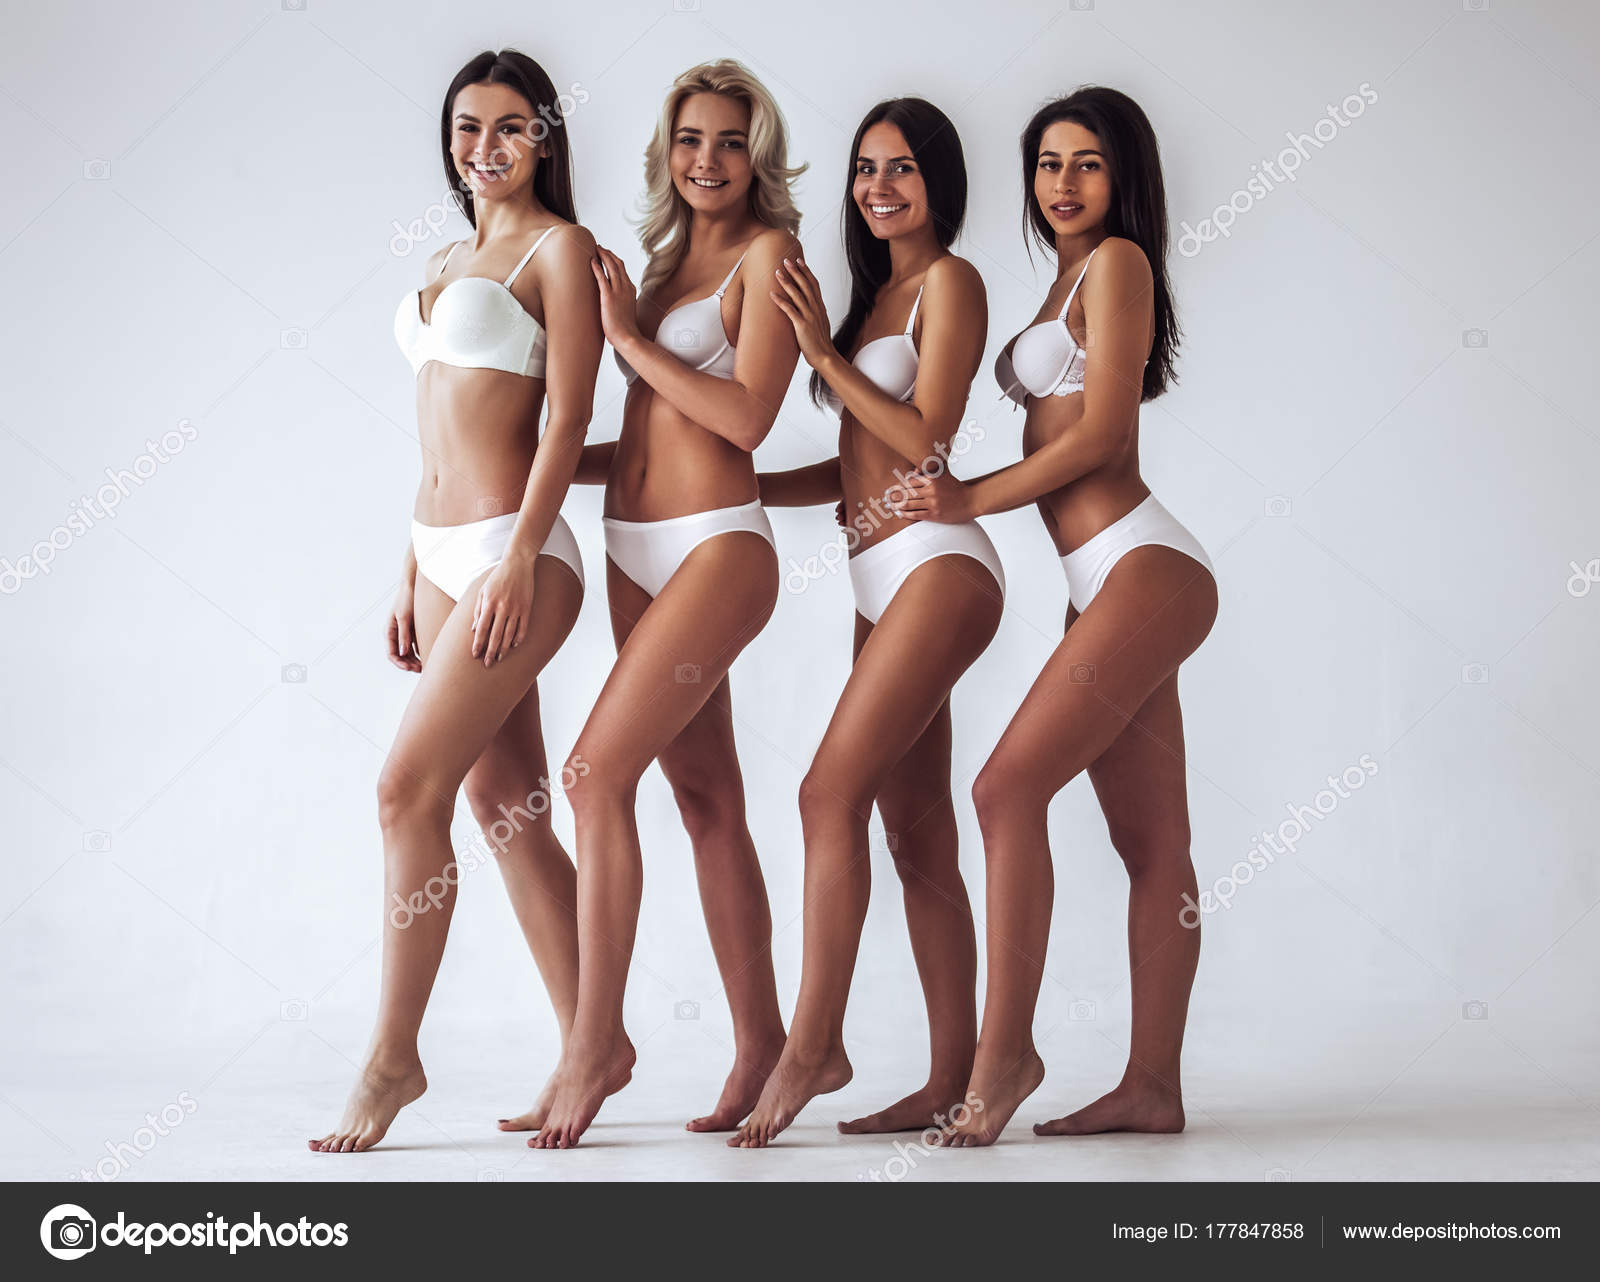 Sexy Frauen In Dessous Stockfoto 4pmphoto At Gmailcom 177847858